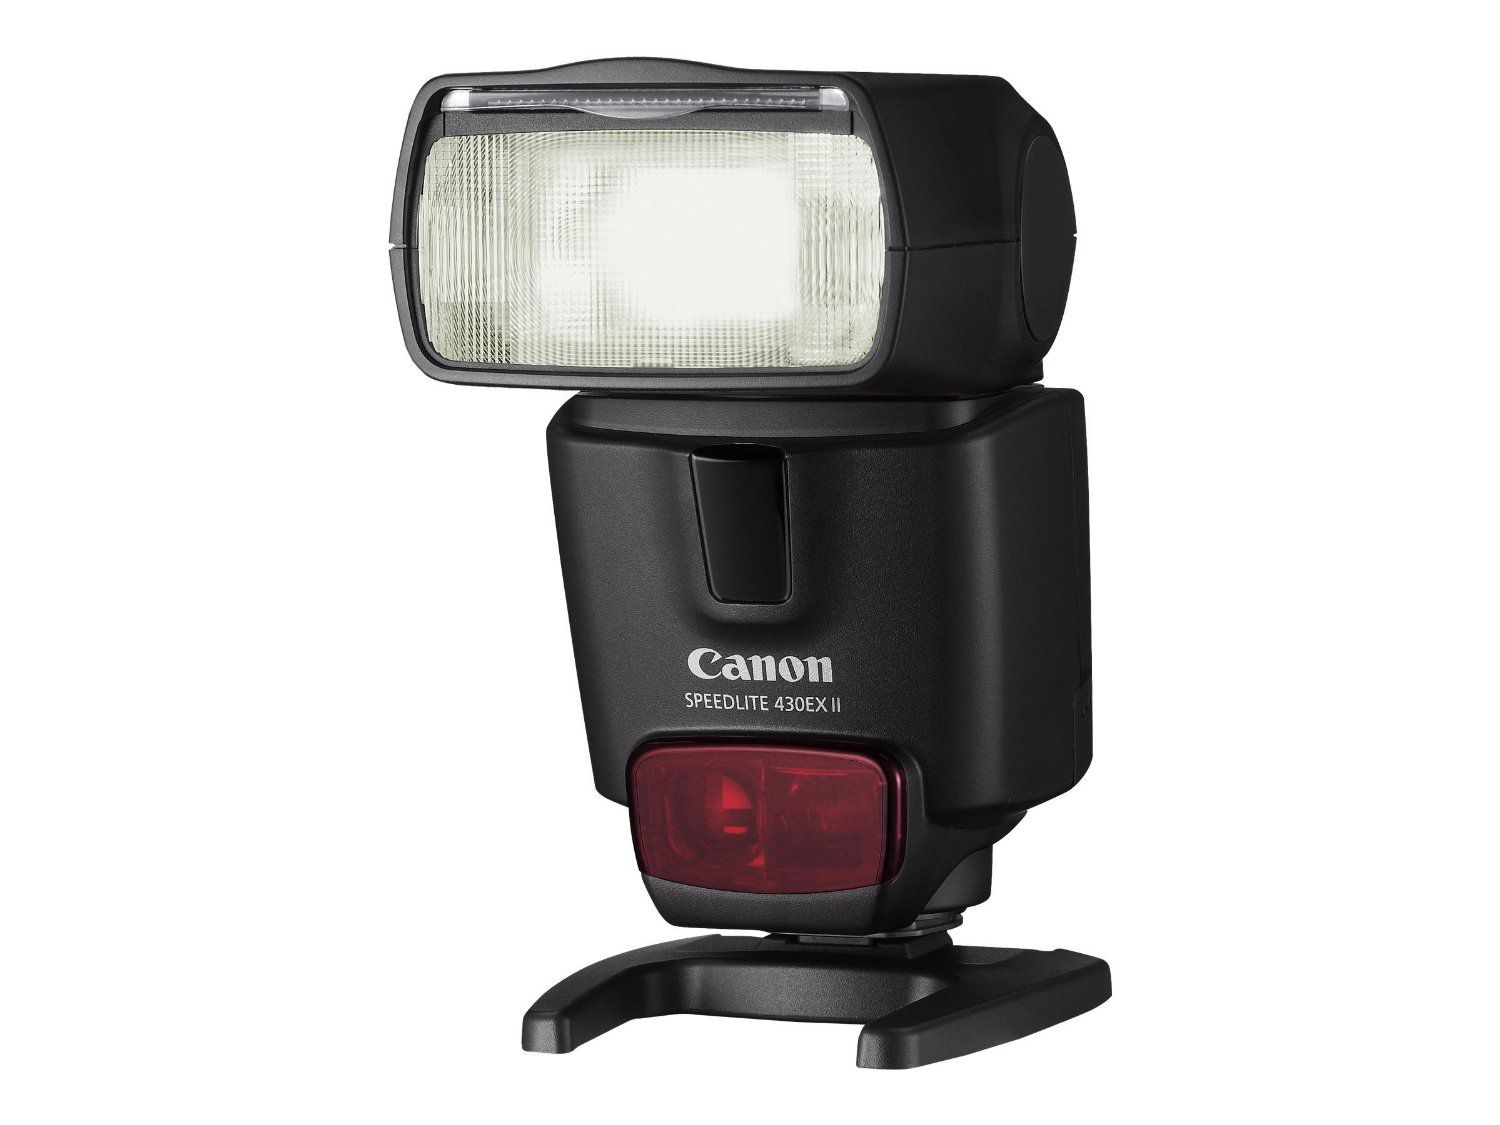 The 7 Best Camera Flashes to Buy in 2017 for DSLR